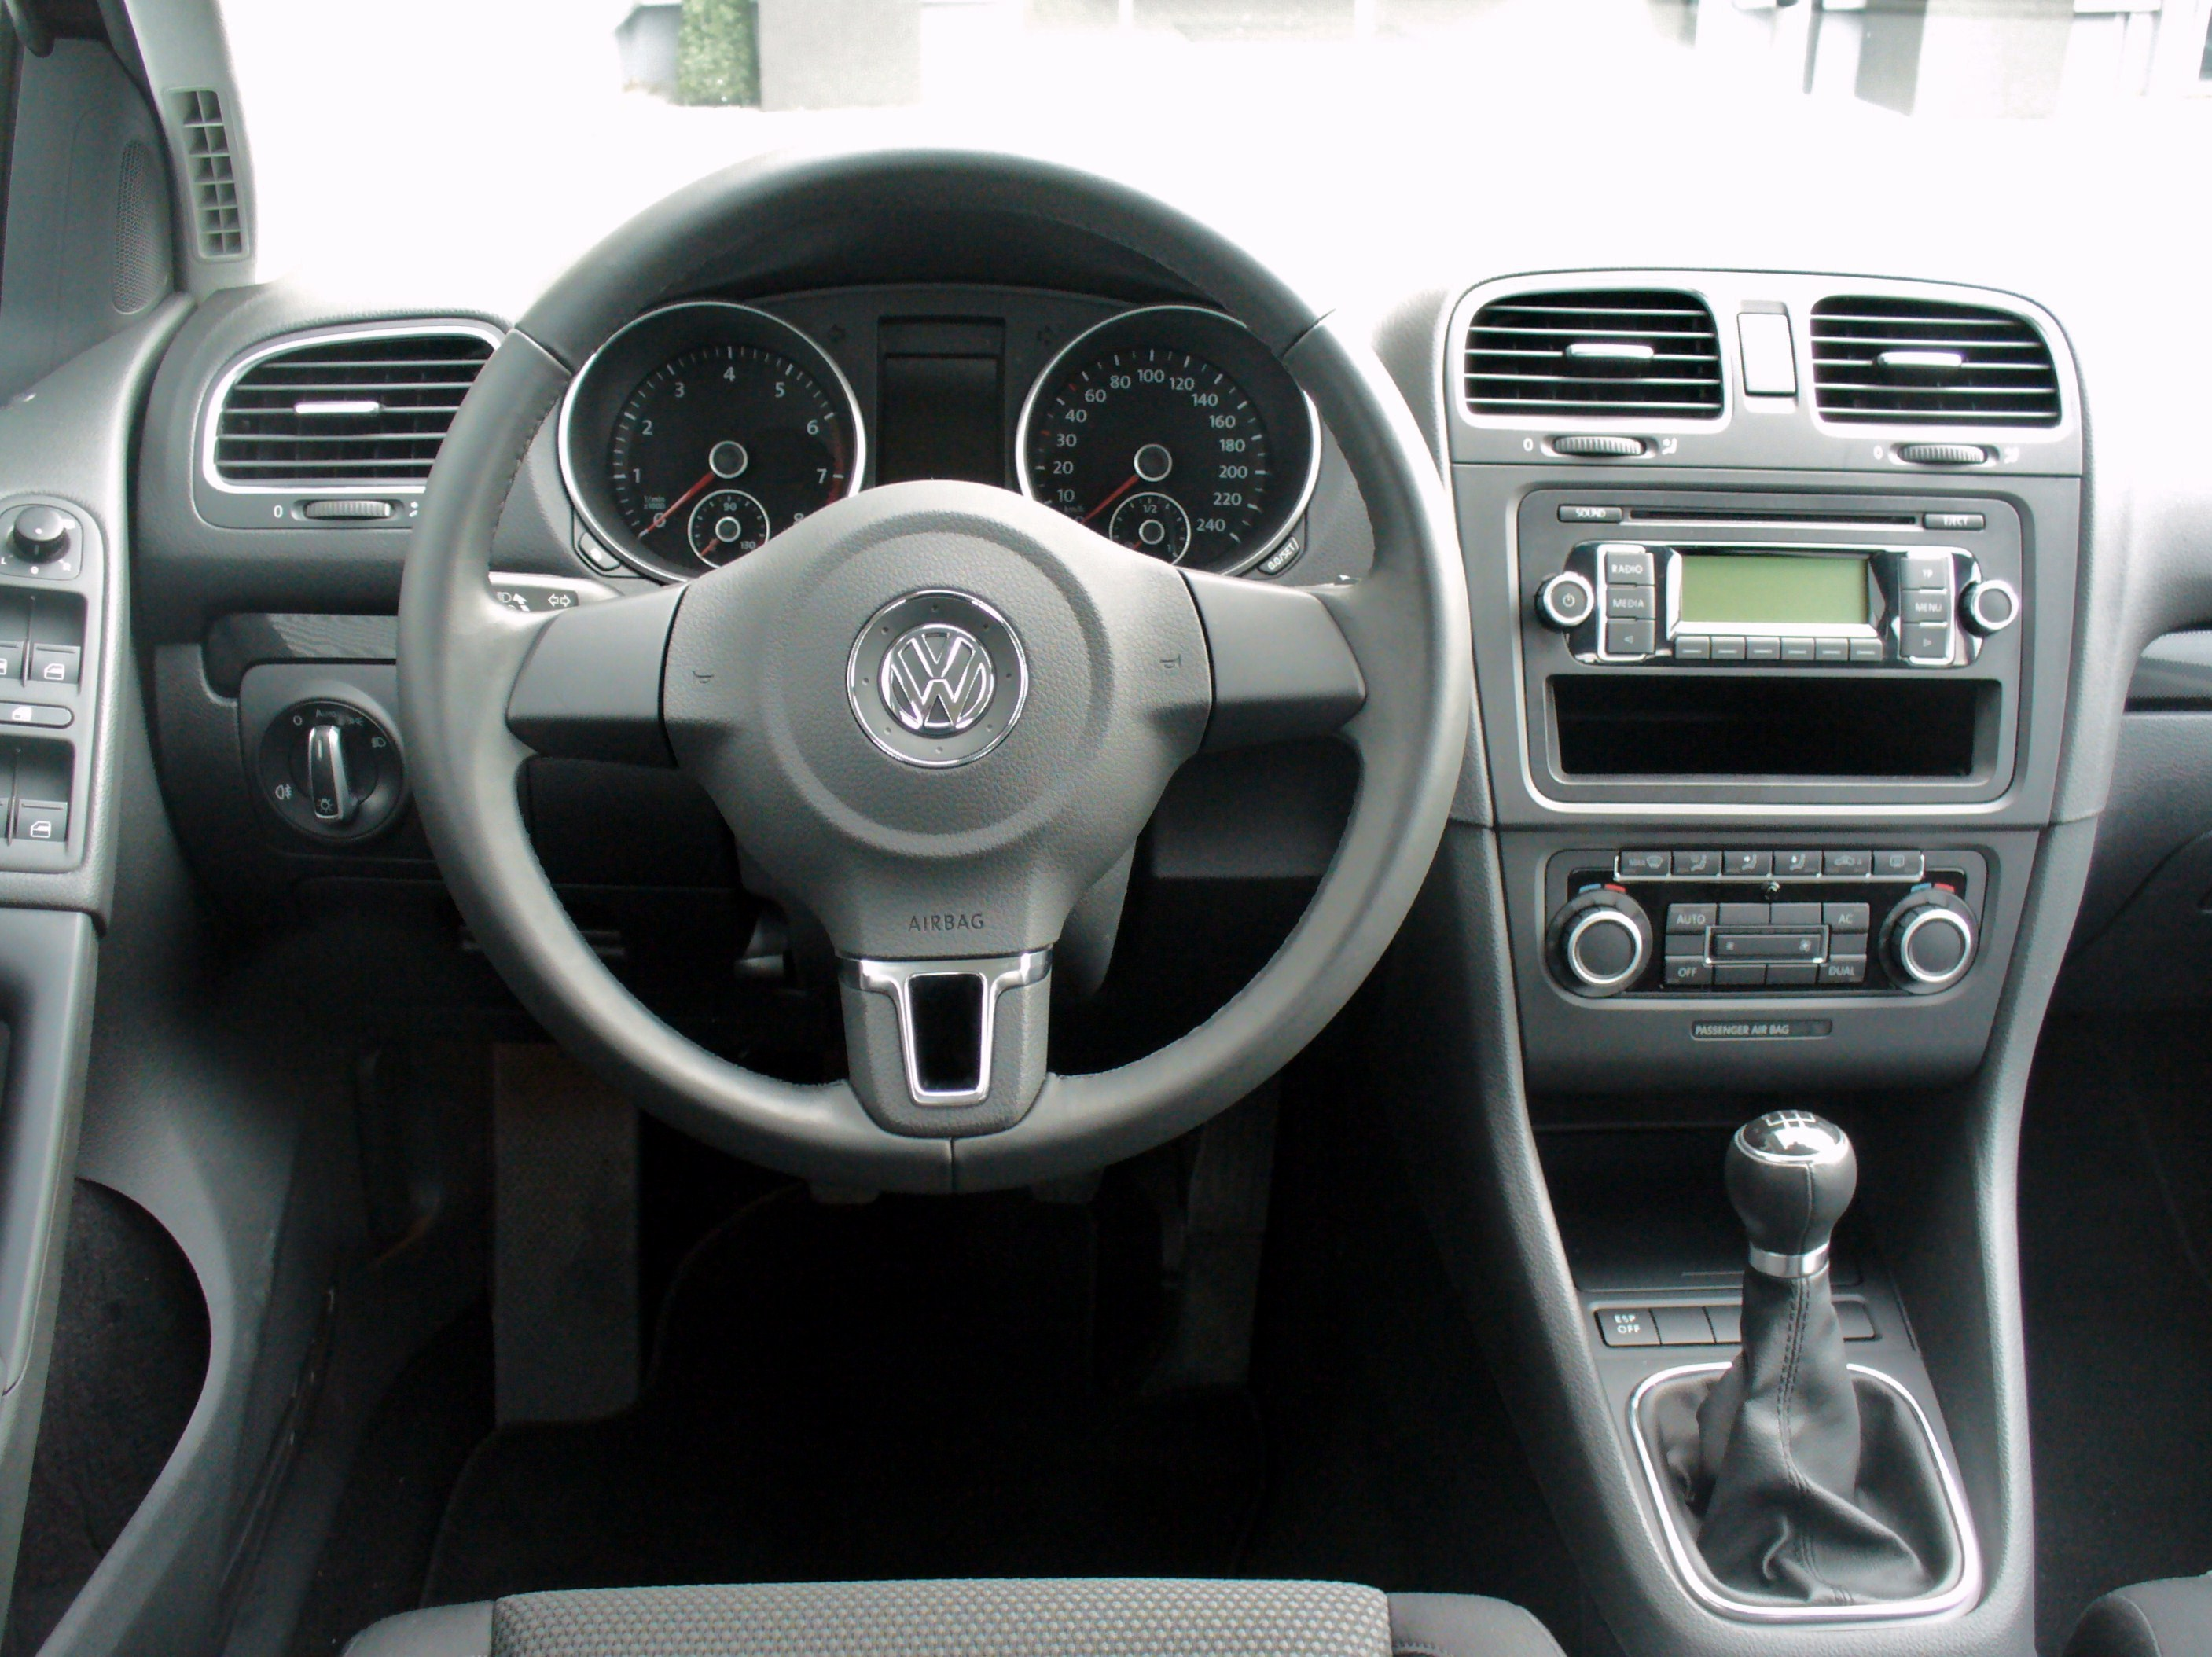 https://upload.wikimedia.org/wikipedia/commons/2/2c/VW_Golf_VI_1.6_Comfortline_Deep_Black_Interieur.JPG